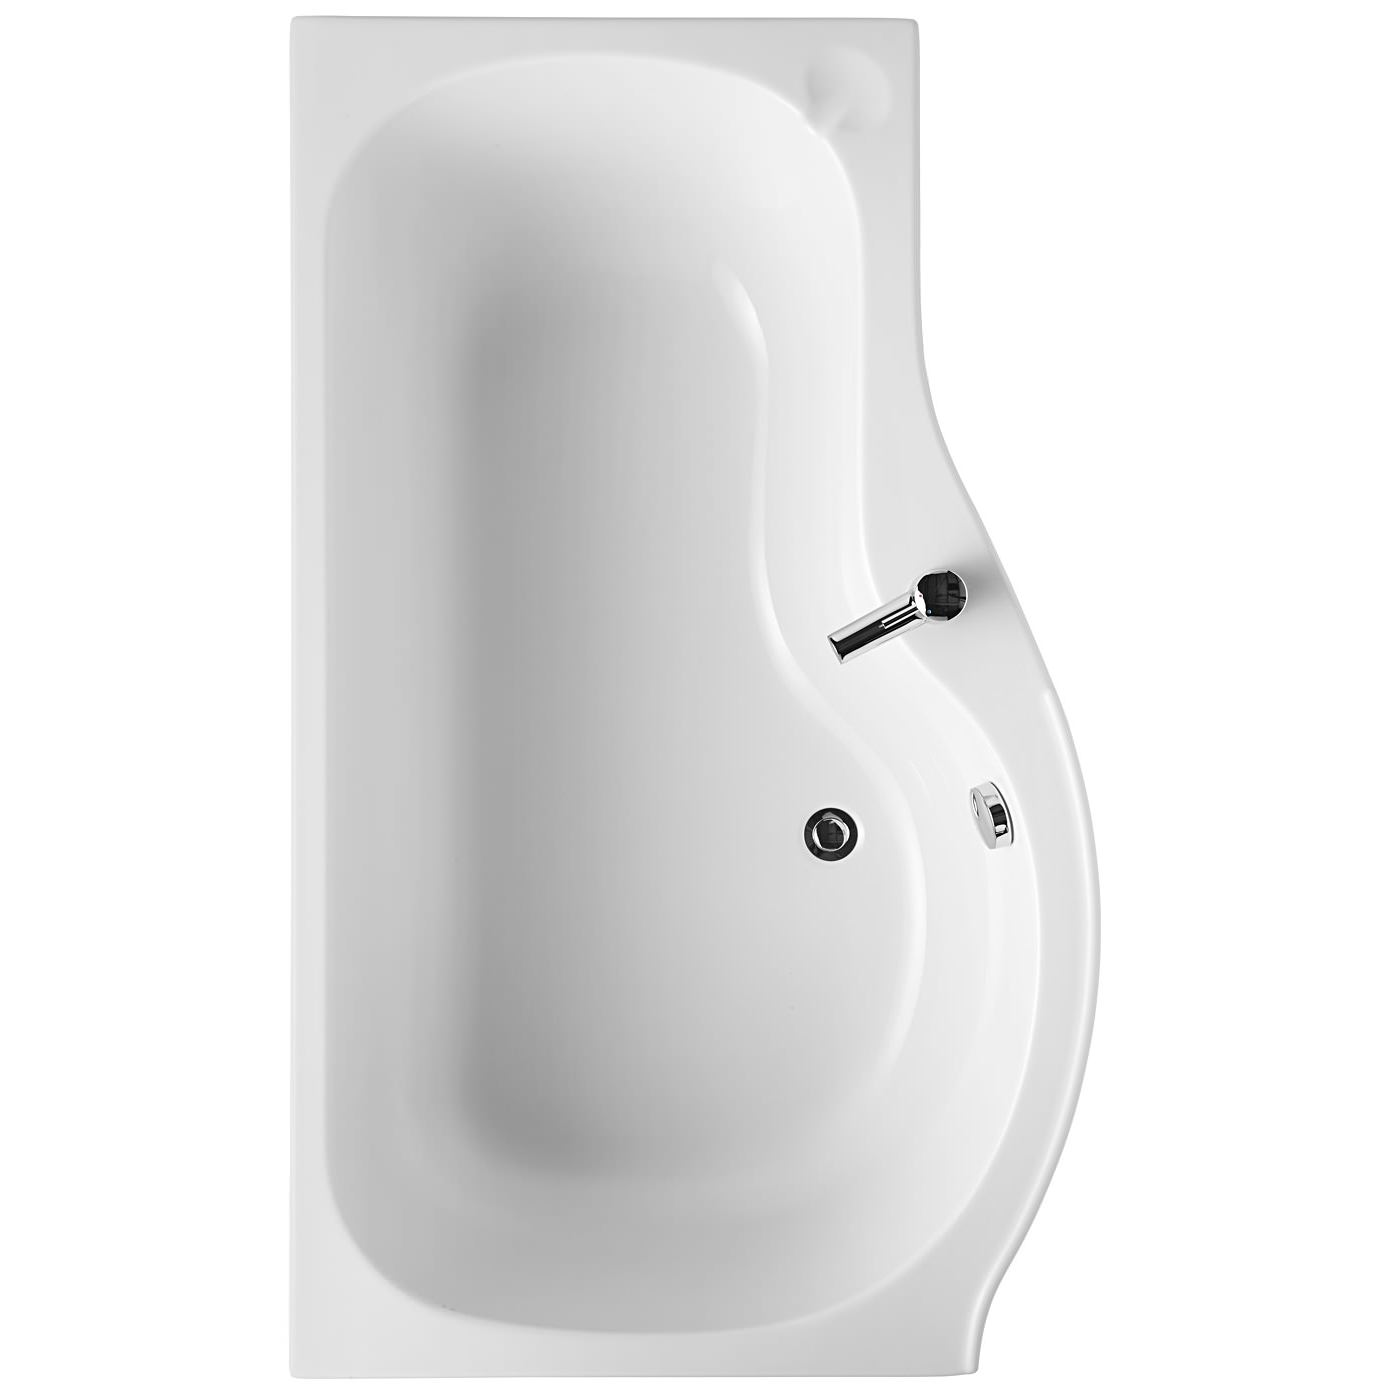 28 ideal standard shower bath ideal standard bathrooms ideal standard shower bath ideal standard space idealform plus 1500 x 700mm shower bath